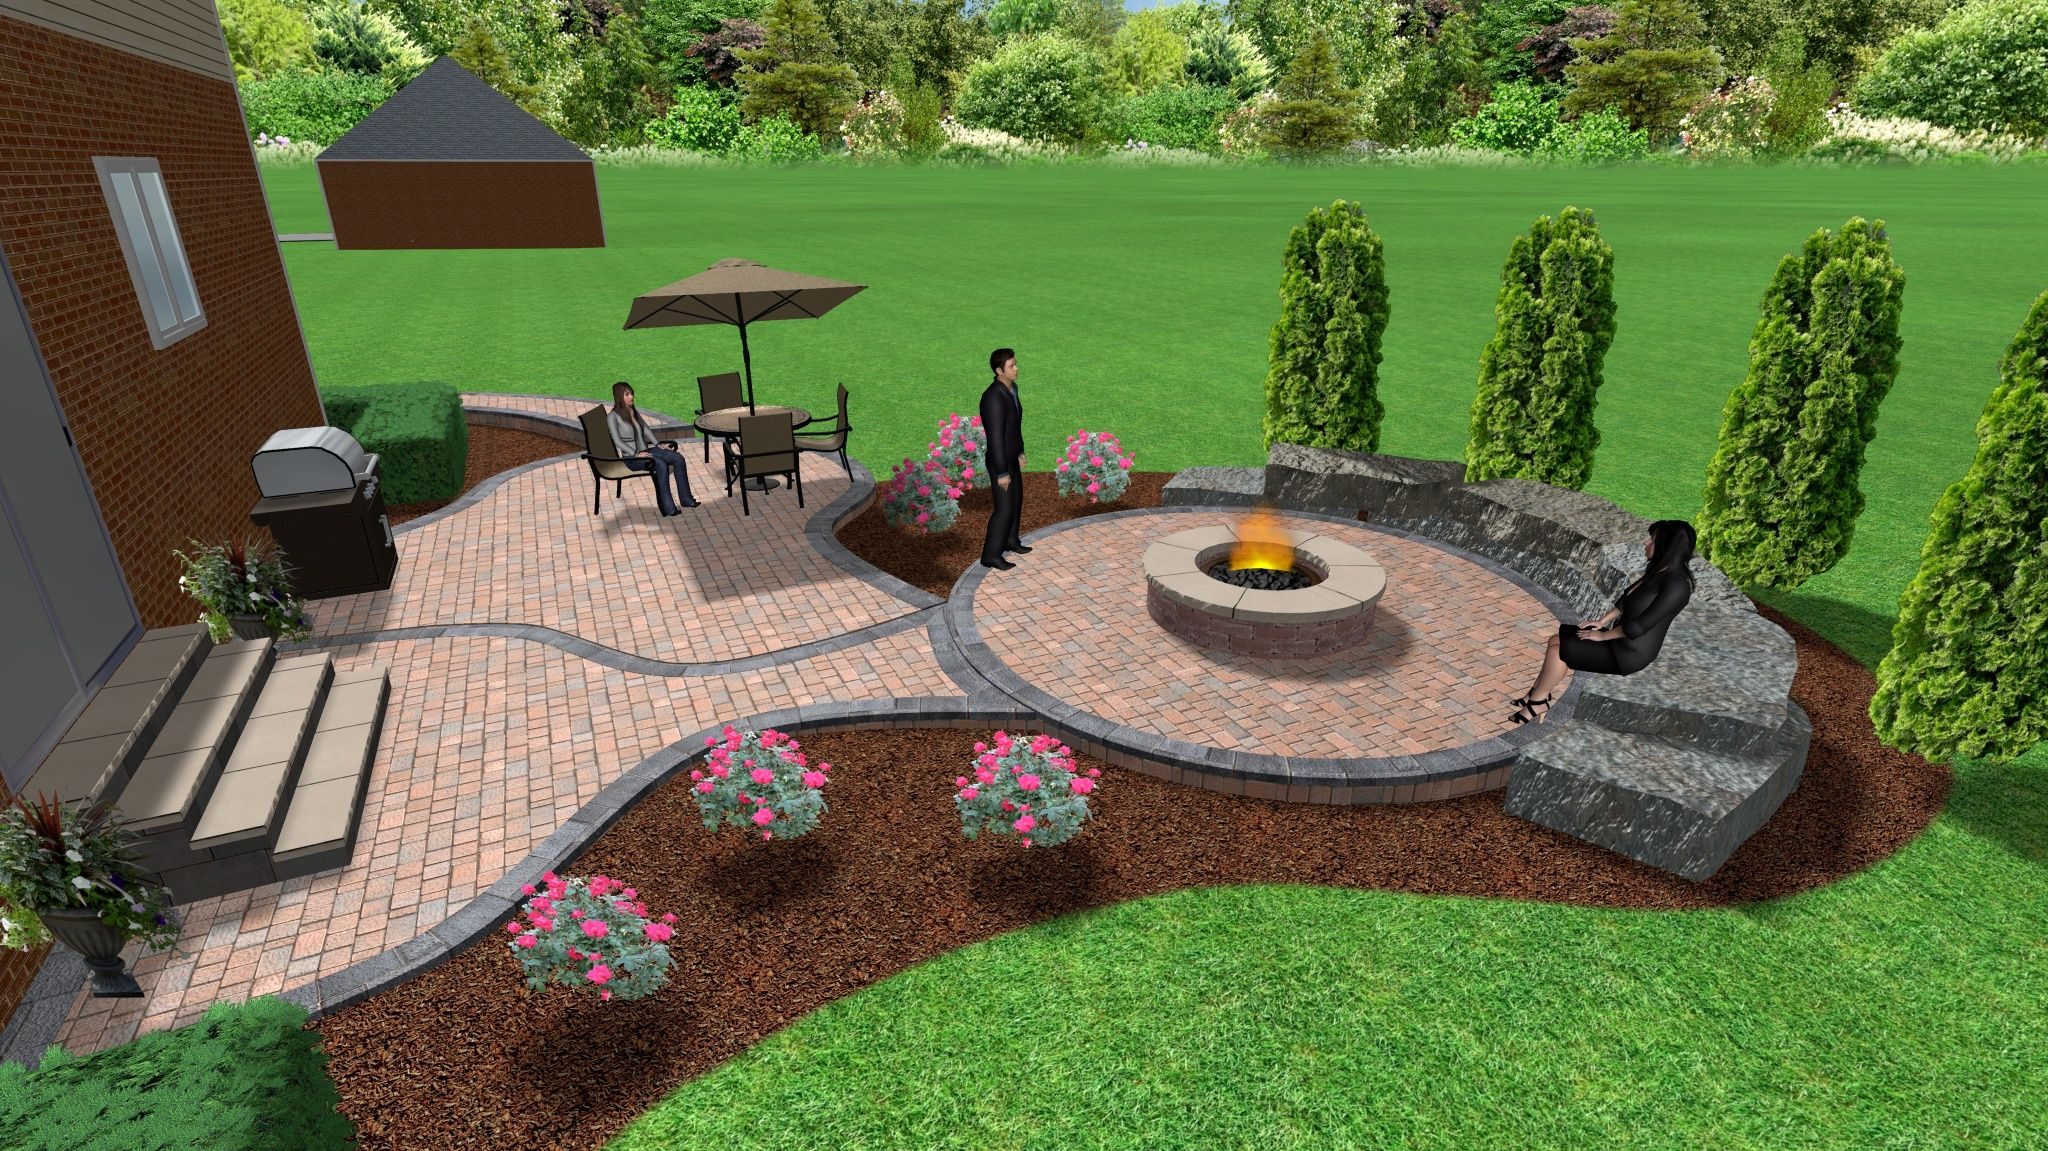 Nice Paver Patio Designs With Fire Pit Fresh With Images Of Paver Patio Concept  65